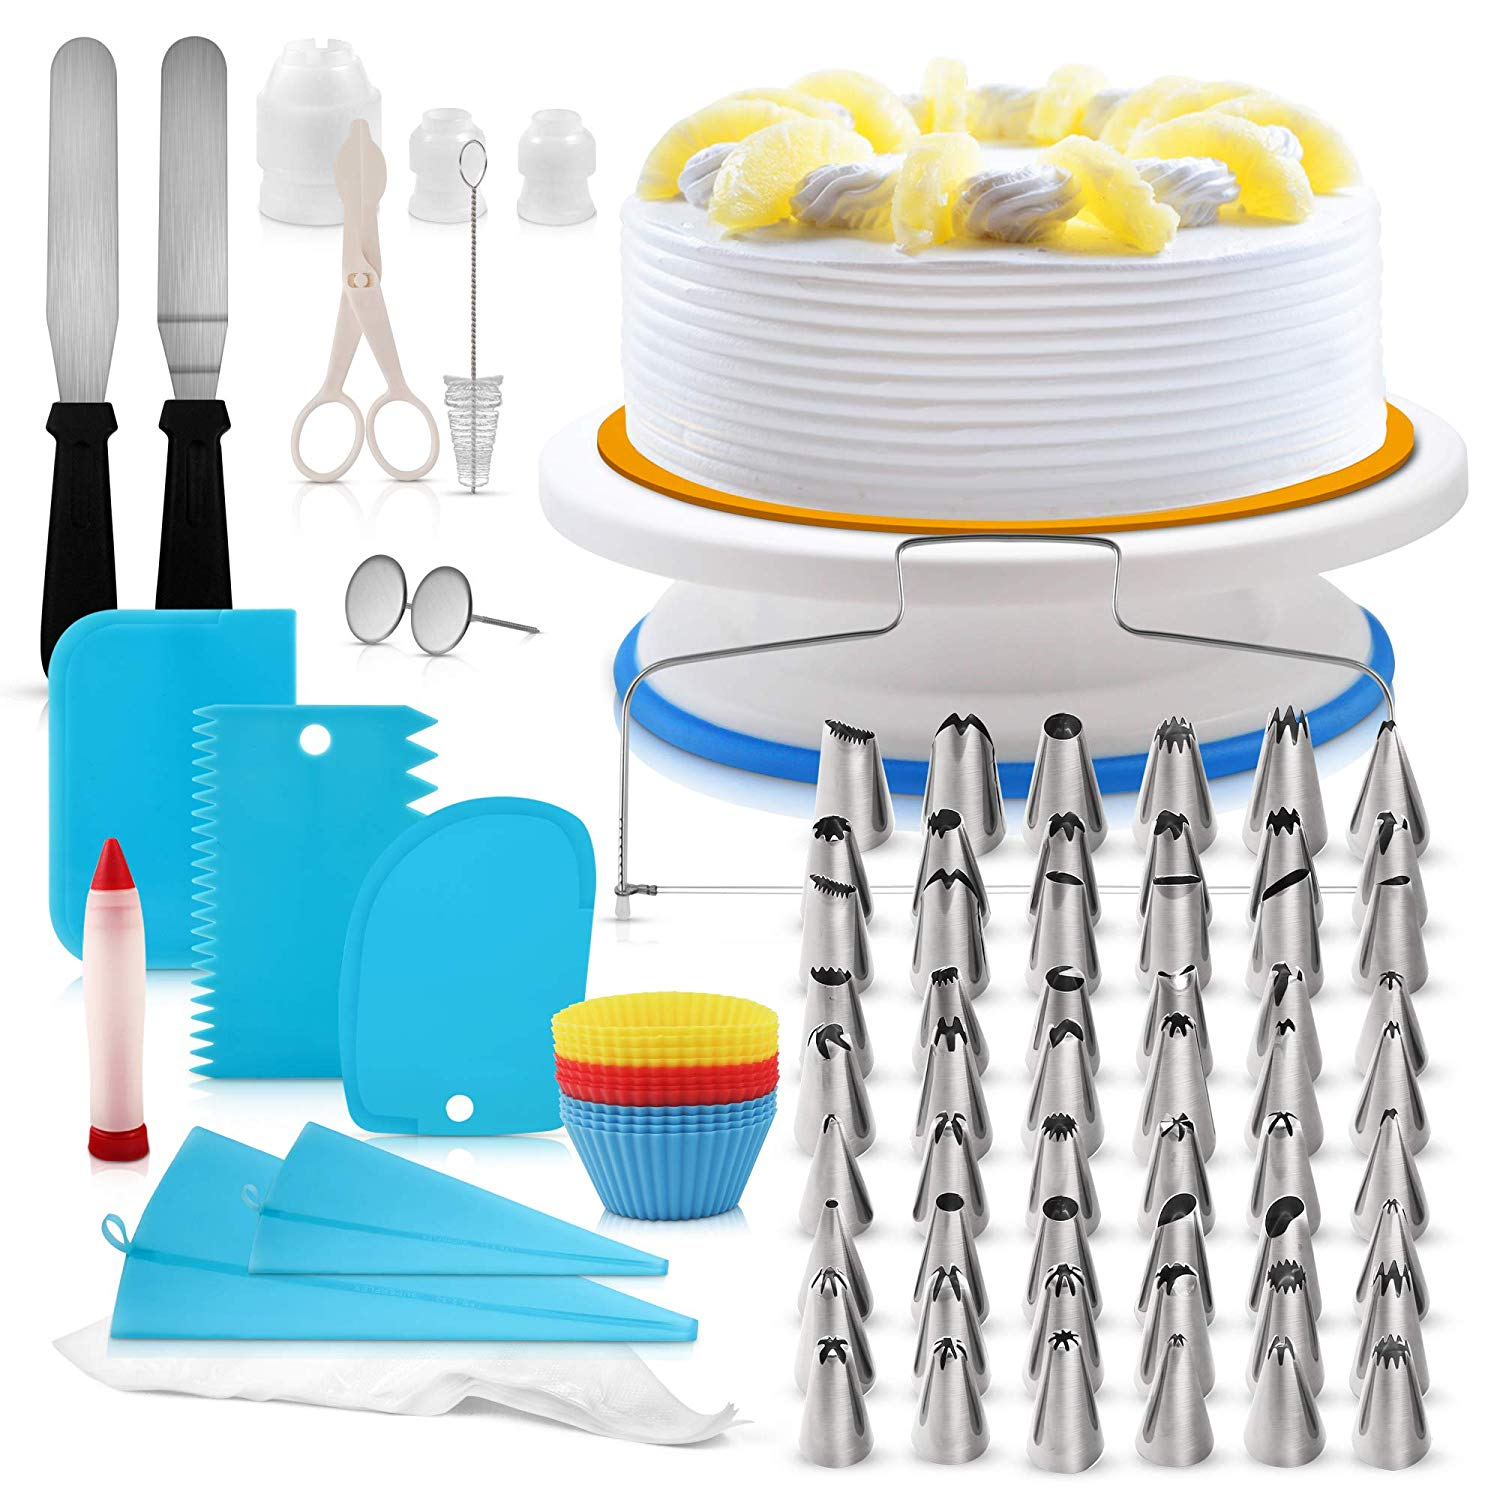 Cake Decorating Supplies Kit 107pc | Cake Turntable | Cake Decorating Kit | Cake Leveler | Cake Stand | Cupcake Decorating | Frosting Piping Bags & Tips | Baking Supplies